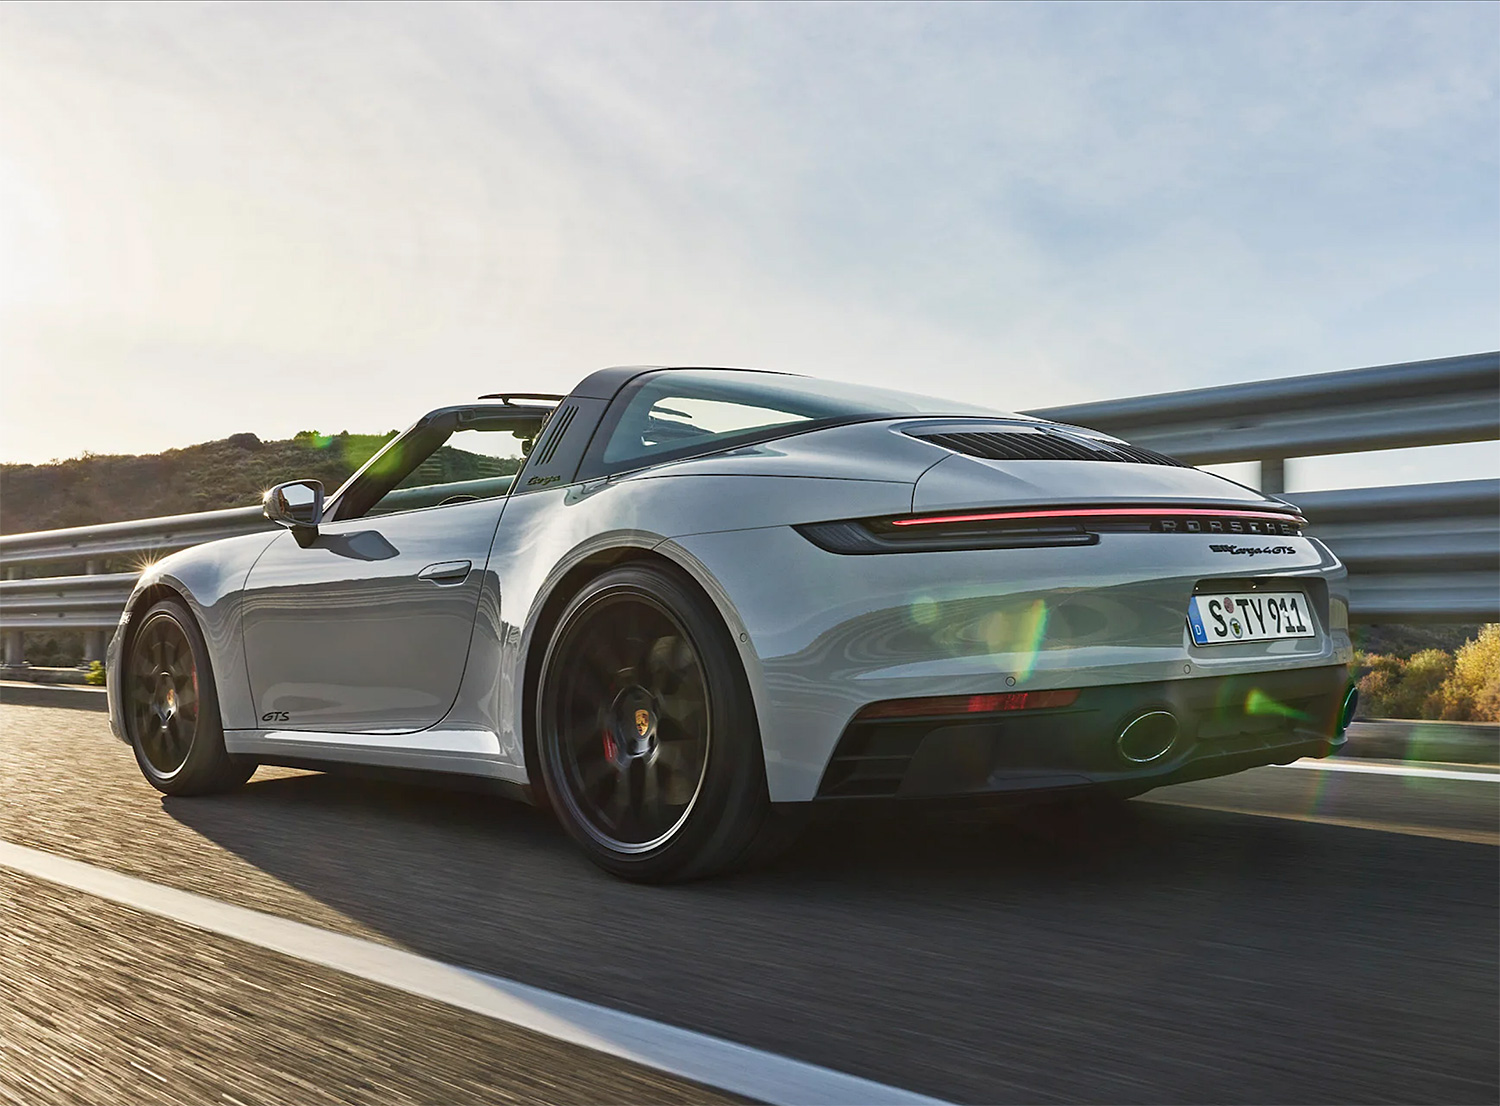 For 2022, Porsche Rolls Out a Faster, Leaner 911 GTS at werd.com